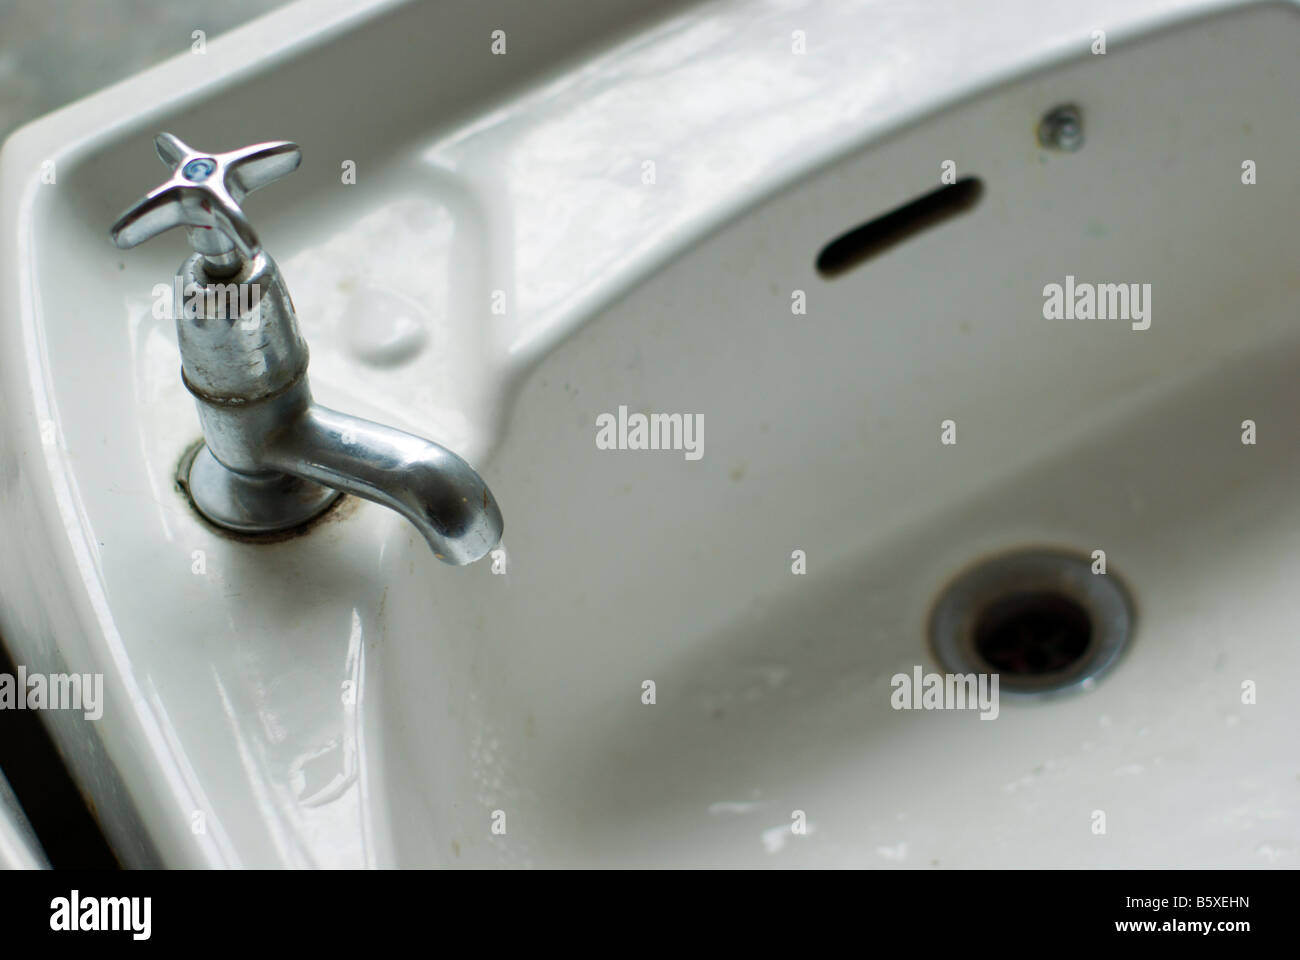 Old Fashioned White Enamel Sink With Chrome Tap Dripping Water